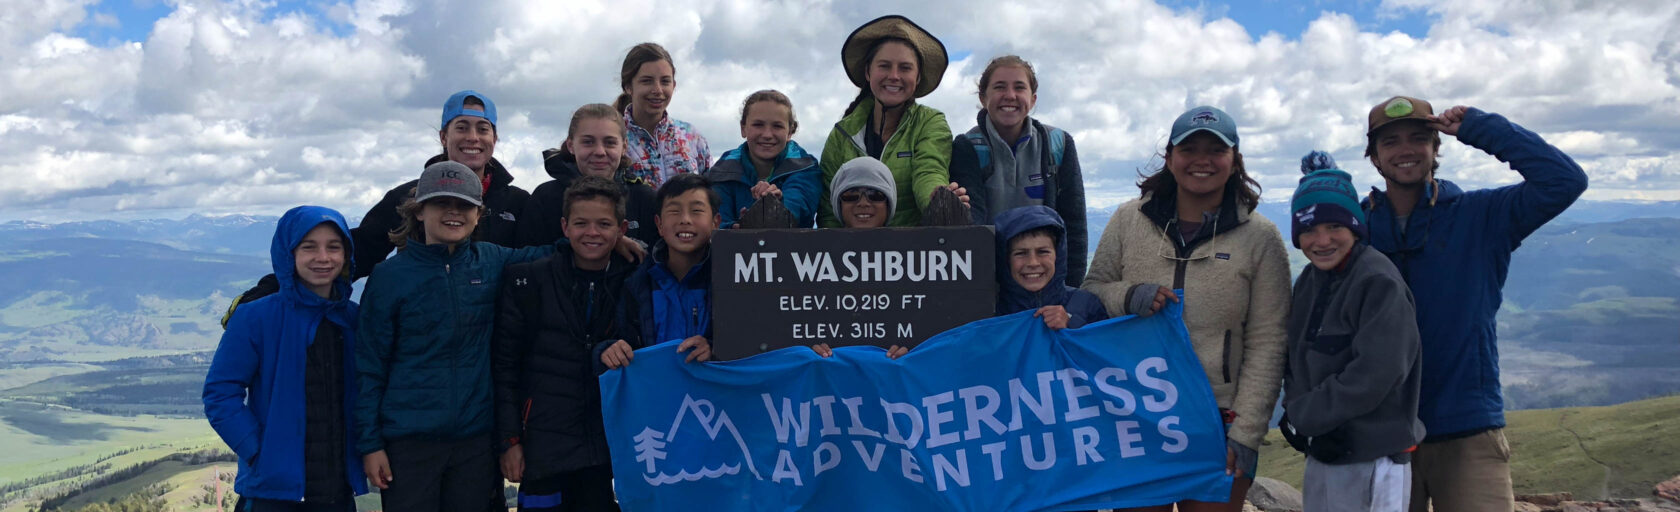 Yellowstone Teton Discovery group photo with WA flag